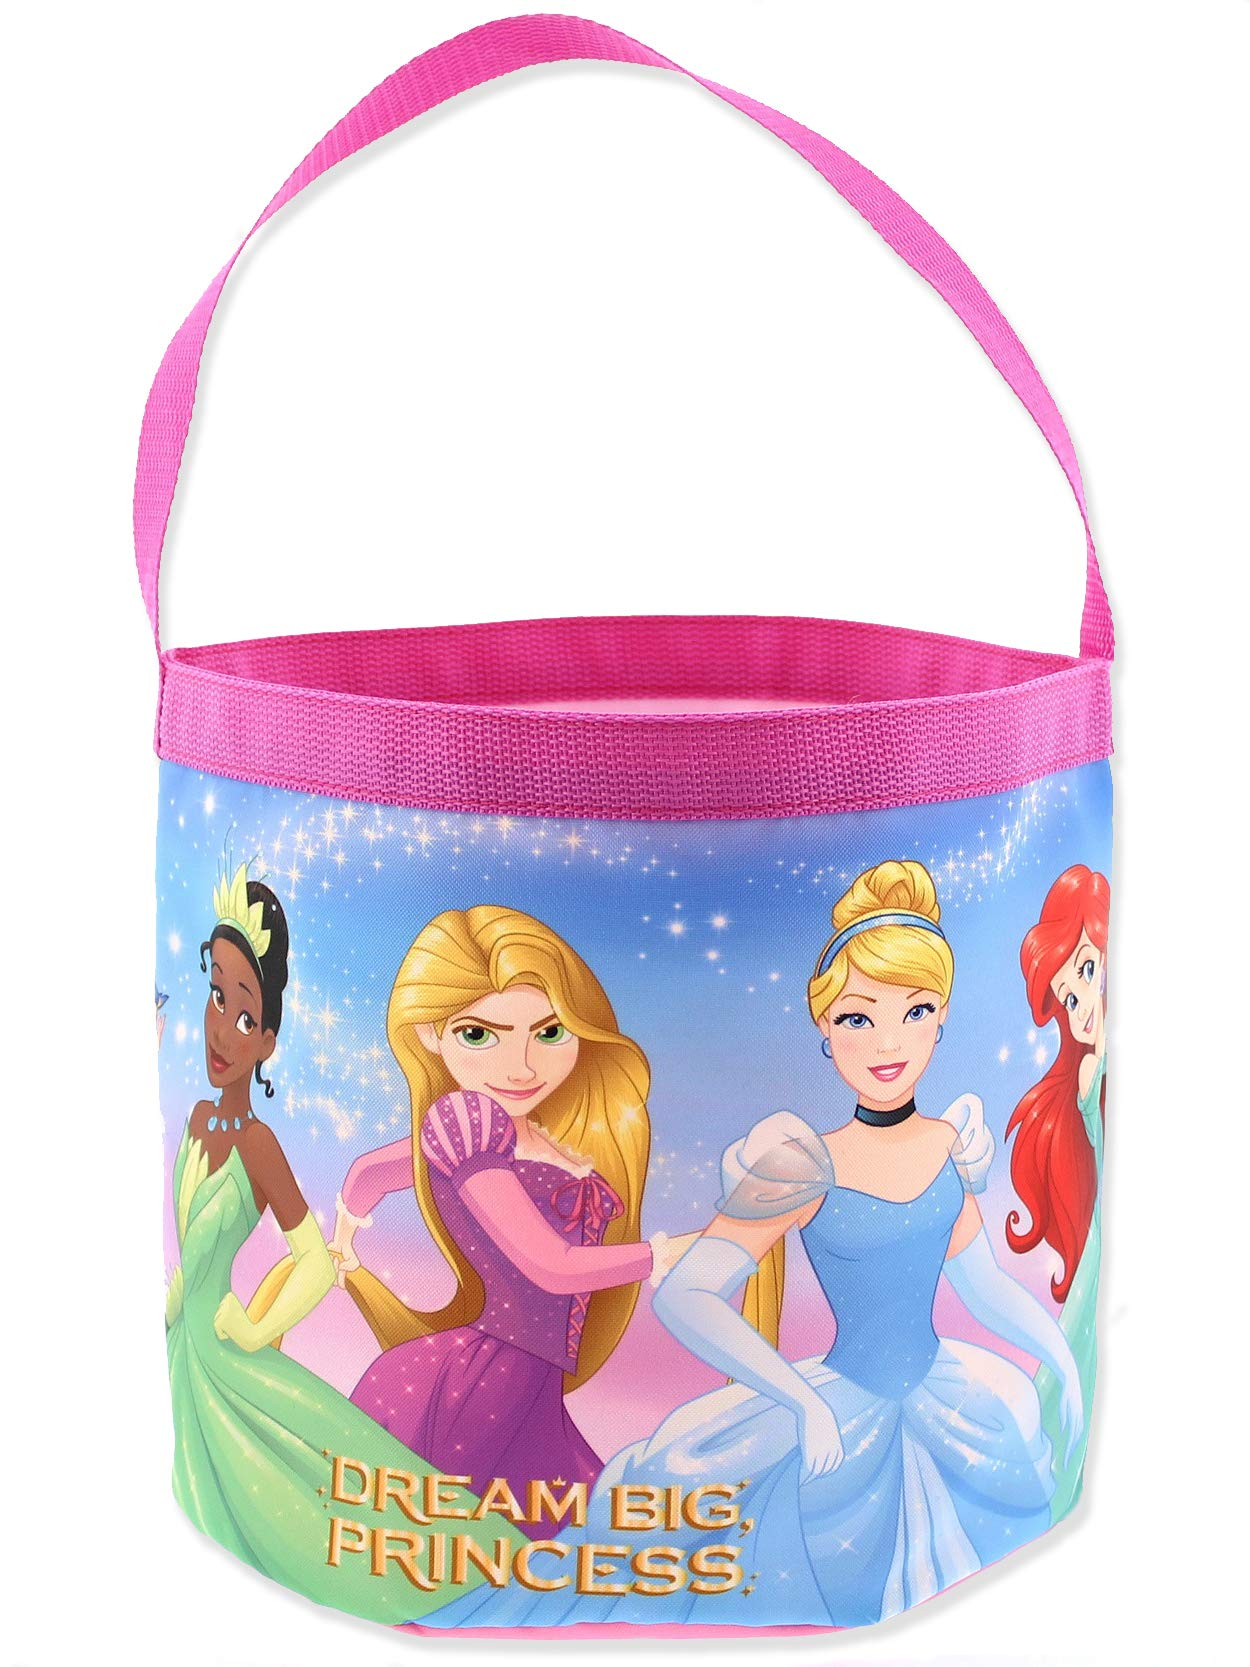 Disney Princess Girls Collapsible Nylon Easter Basket Bucket Gift Tote Bag (One Size, Pink)